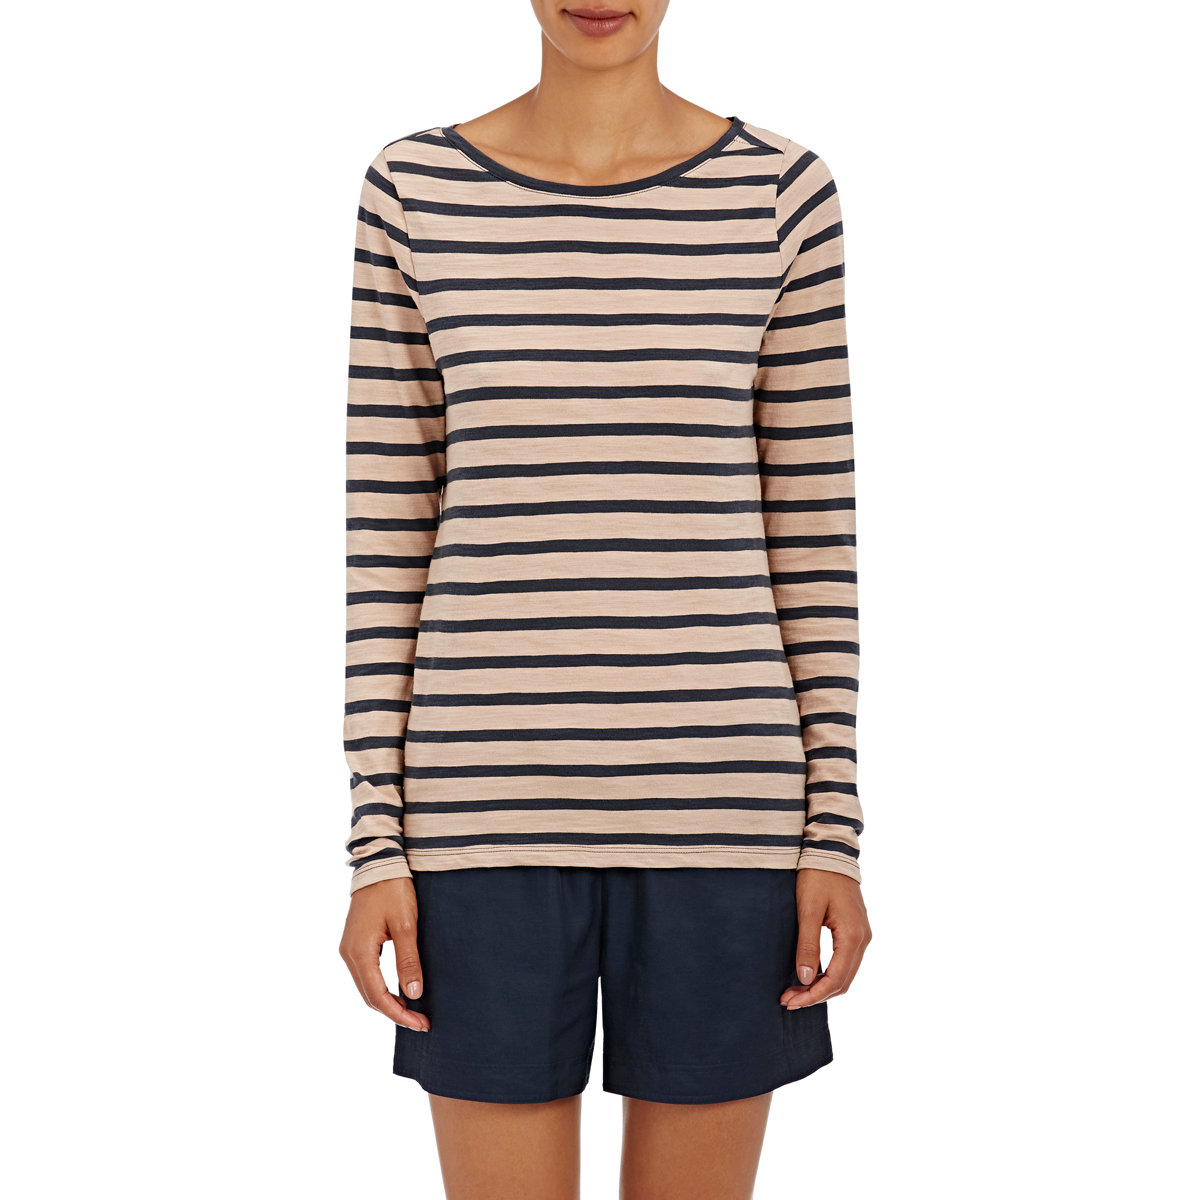 Lyst skin striped cotton jersey long sleeve t shirt in blue for Blue and white striped long sleeve t shirt